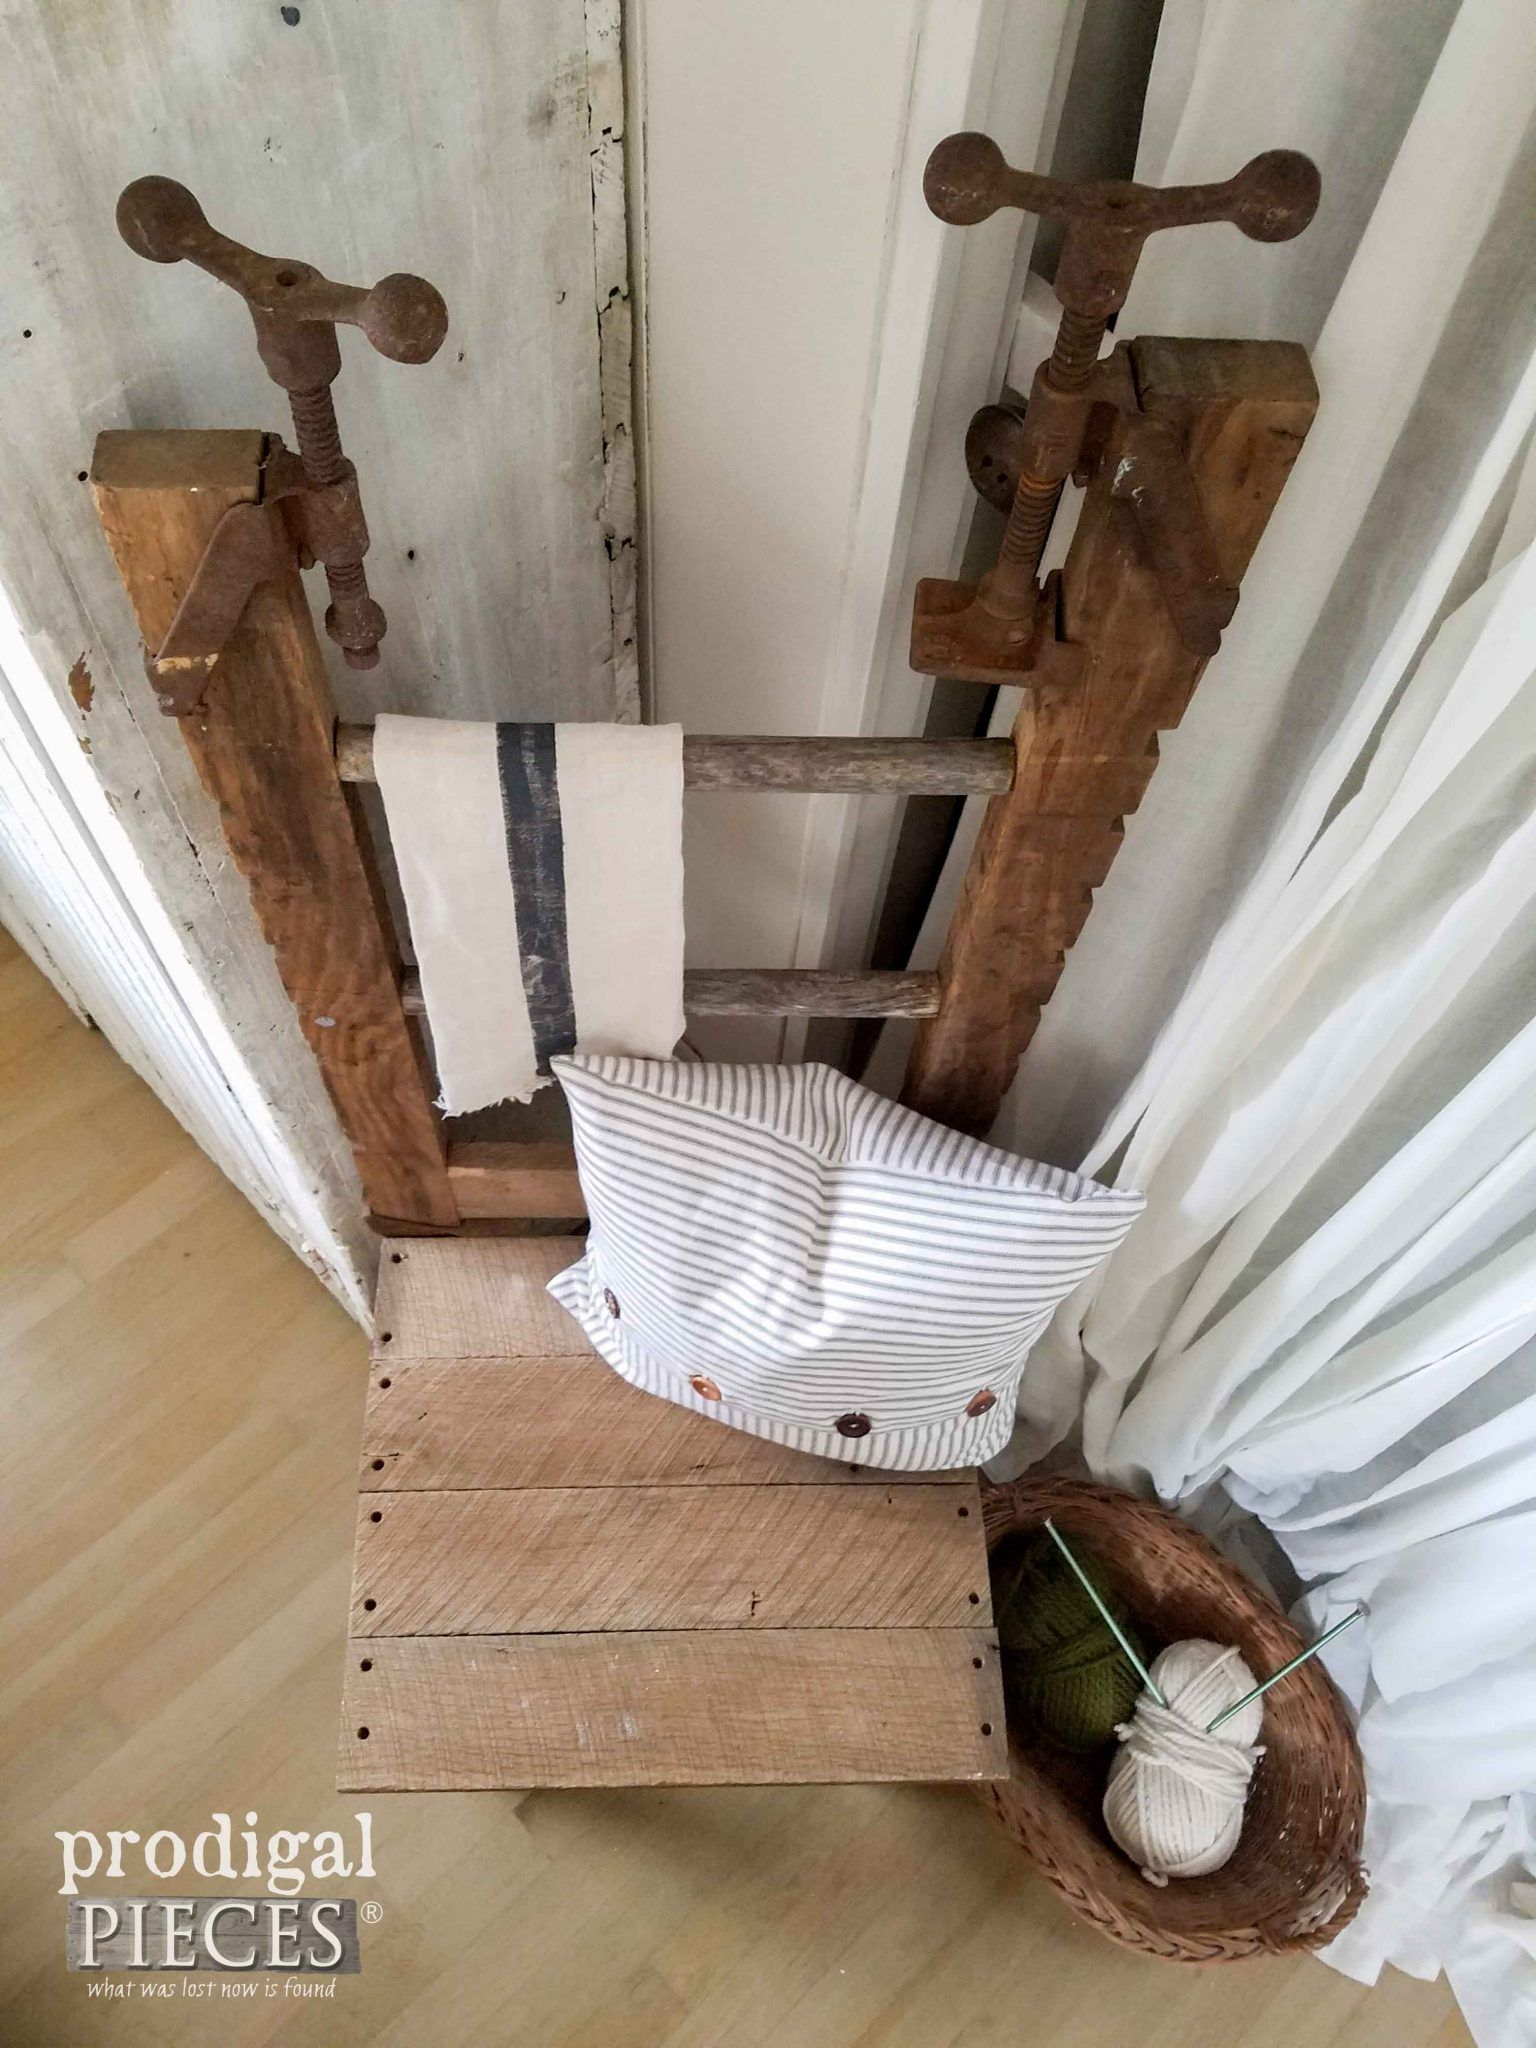 Top View of Repurposed Antique Clamp, Ladder, and Barn Wood Chair by Prodigal Pieces | prodigalpieces.com